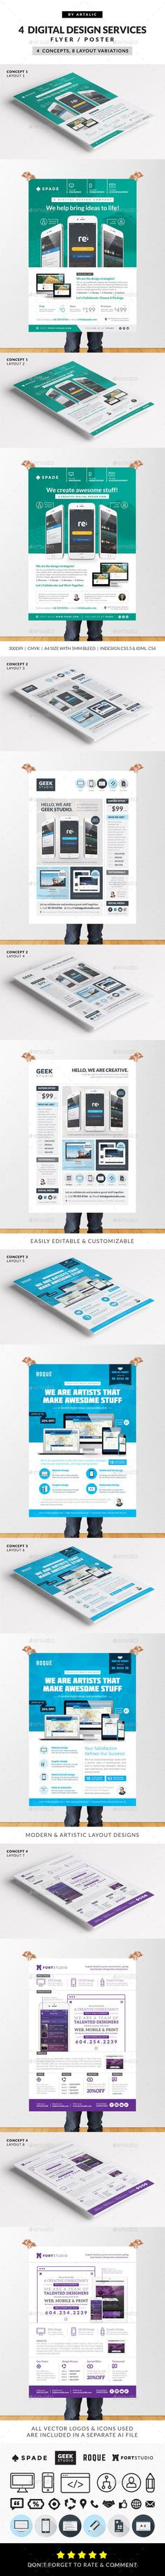 4 Design(Web/App/Graphic) Services Flyer/Poster Template PSD | Buy and Download: http://graphicriver.net/item/4-designwebappgraphic-services-flyerposter/9005525?WT.ac=category_thumb&WT.z_author=Artalic&ref=ksioks: